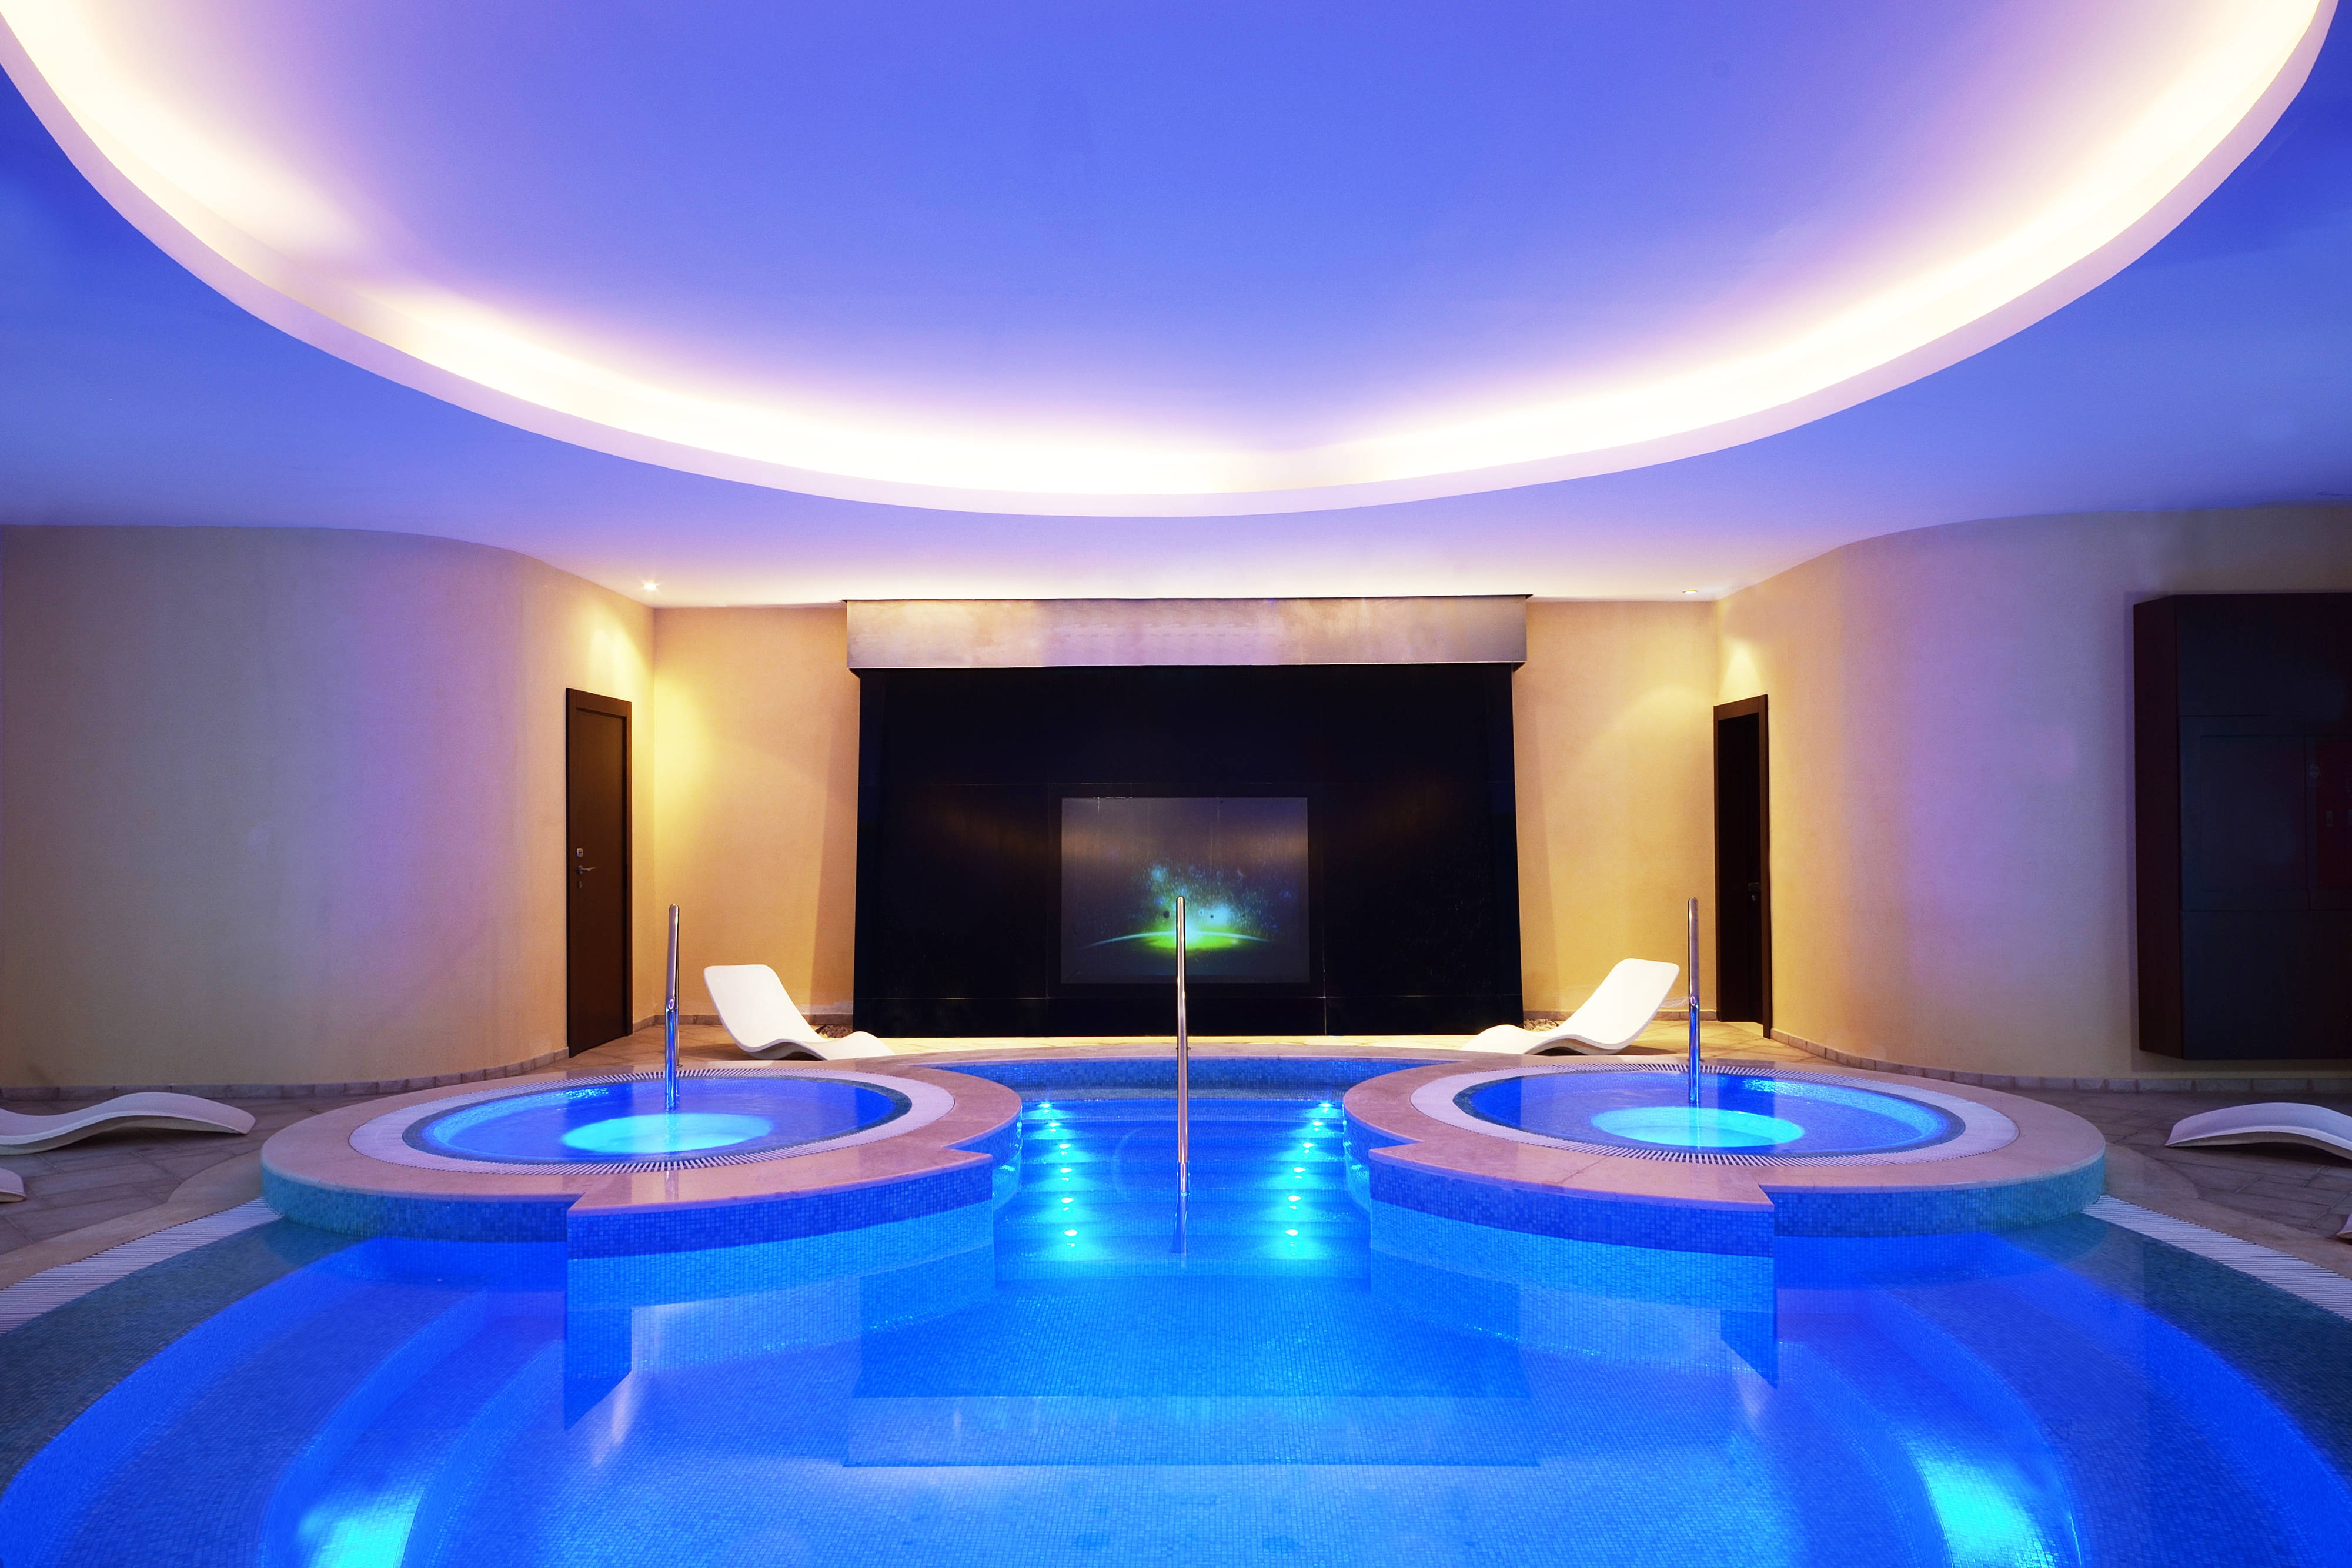 Explore Spa Pool and Jacuzzi